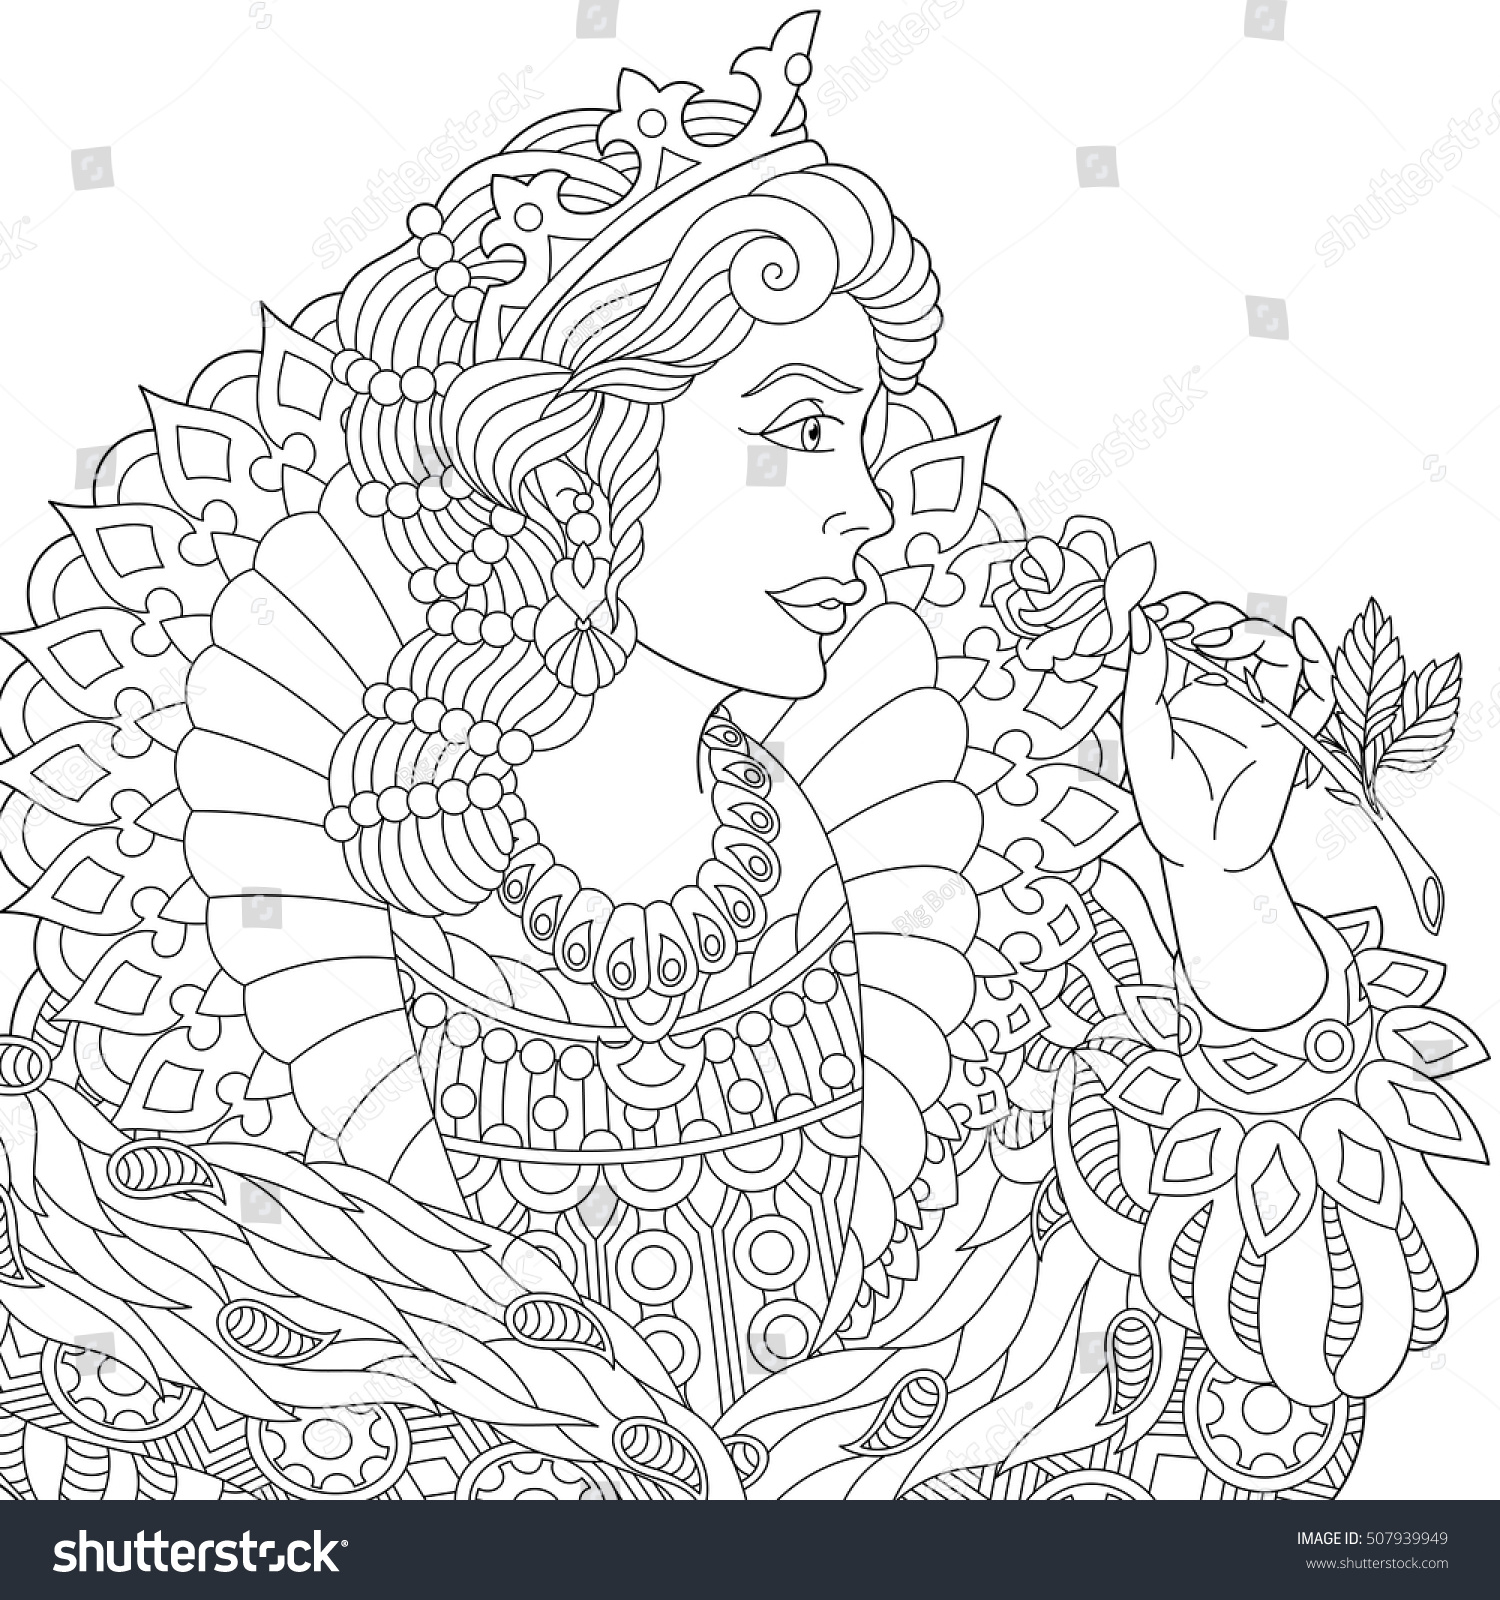 Coloring book princess crowns - Stylized Young Beautiful Queen Princess In A Crown Is Holding Rose Flower Freehand